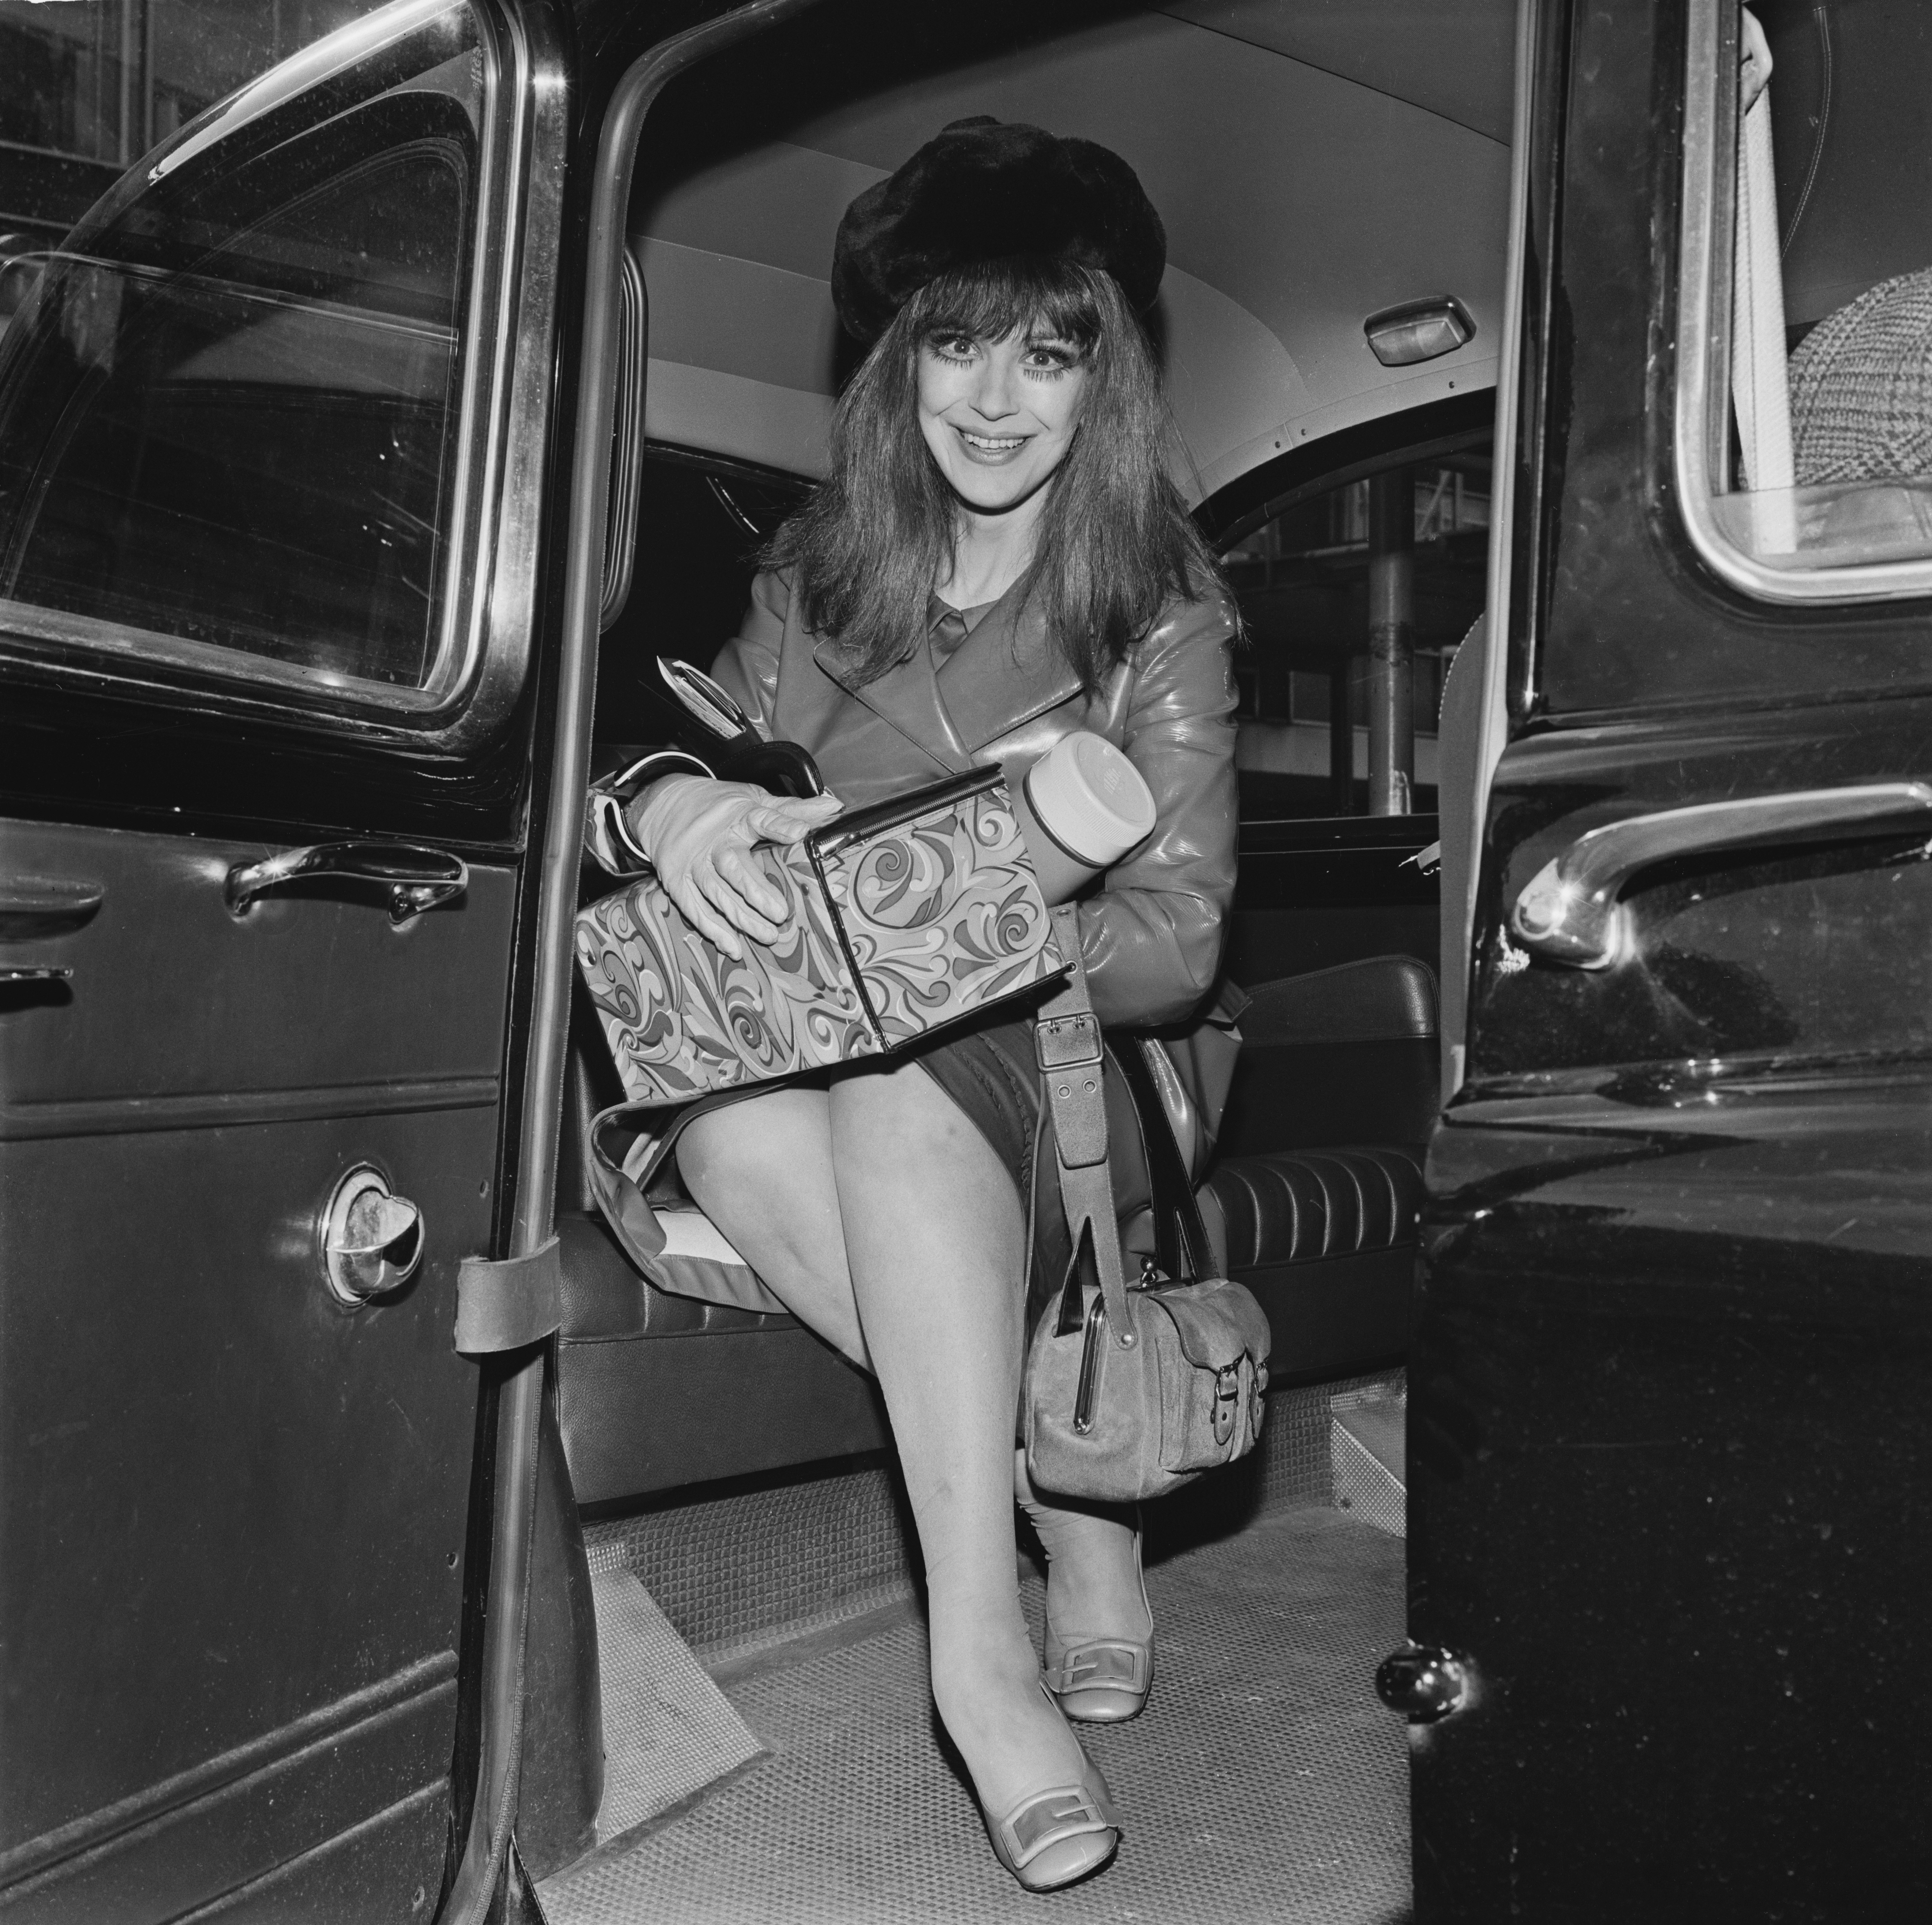 british stage and television actress Fenella Fielding at Heathrow Airport, London, UK, 23rd September 1968. (Photo by Dove/Daily Express/Getty Images)